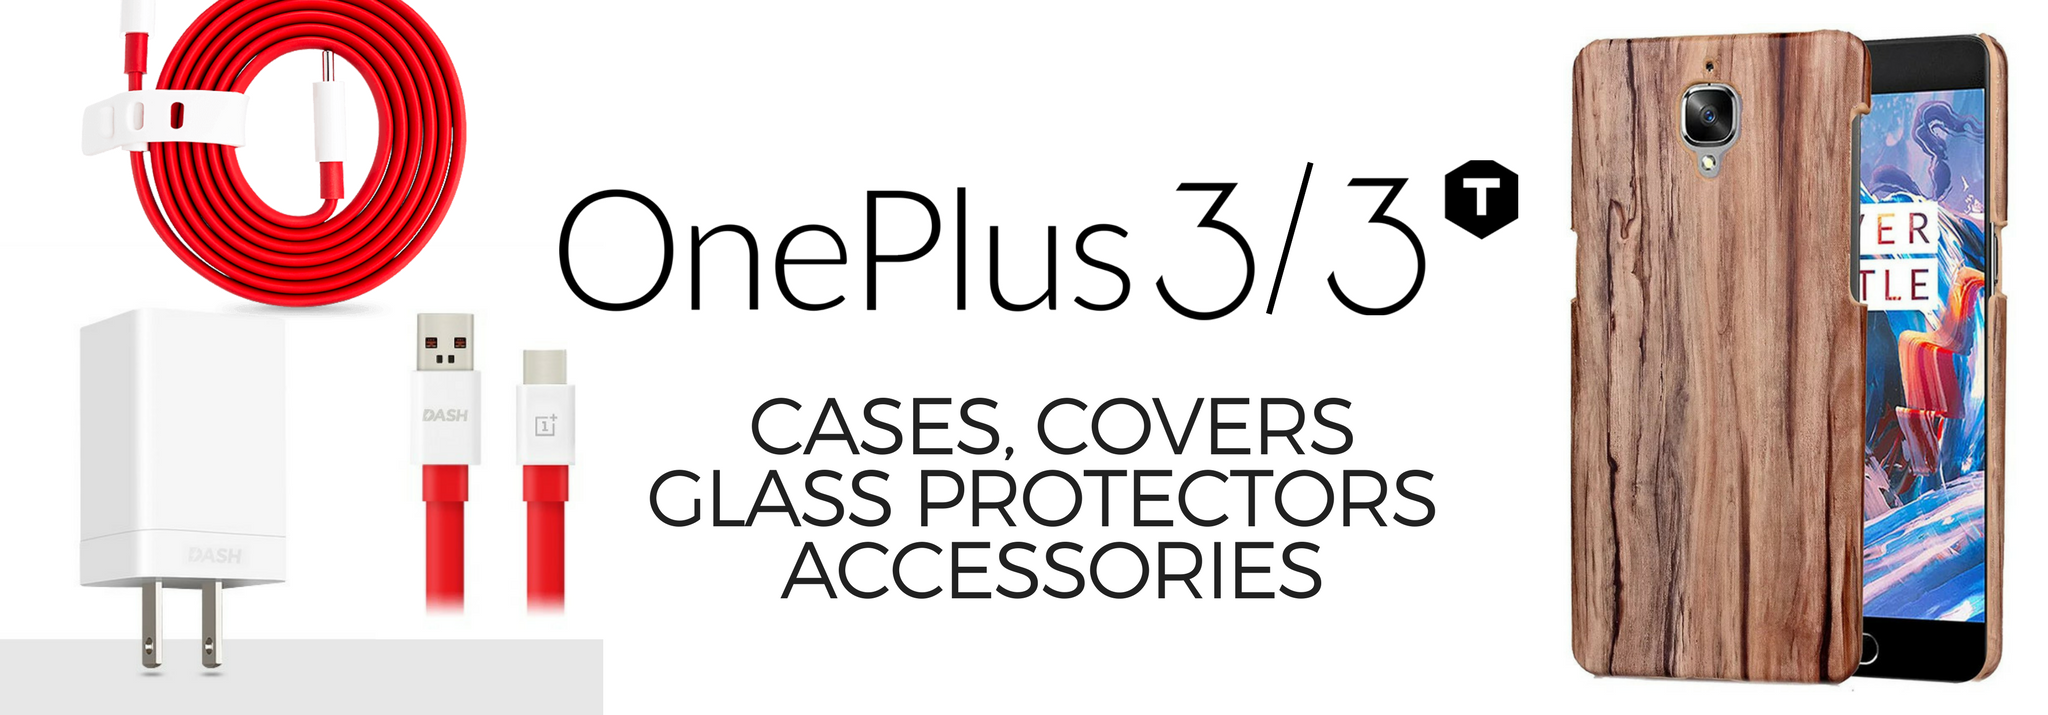 OnePlus 3/3T Accessories, Cases and Covers in Pakistan